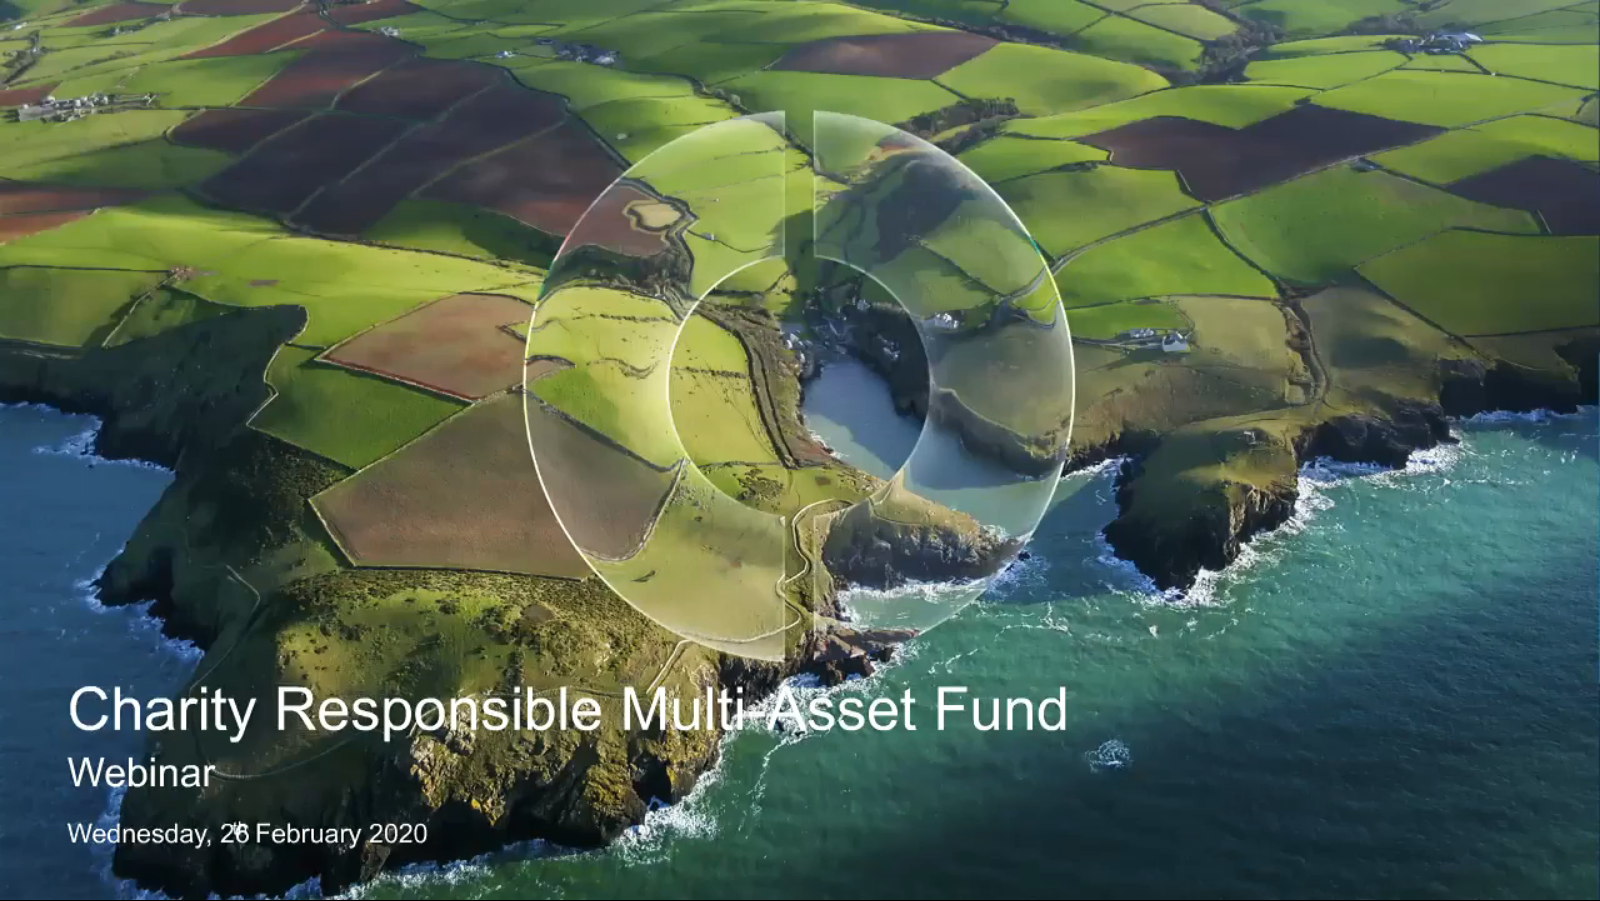 Charity Responsible Multi-Asset Fund webinar Q1 2020